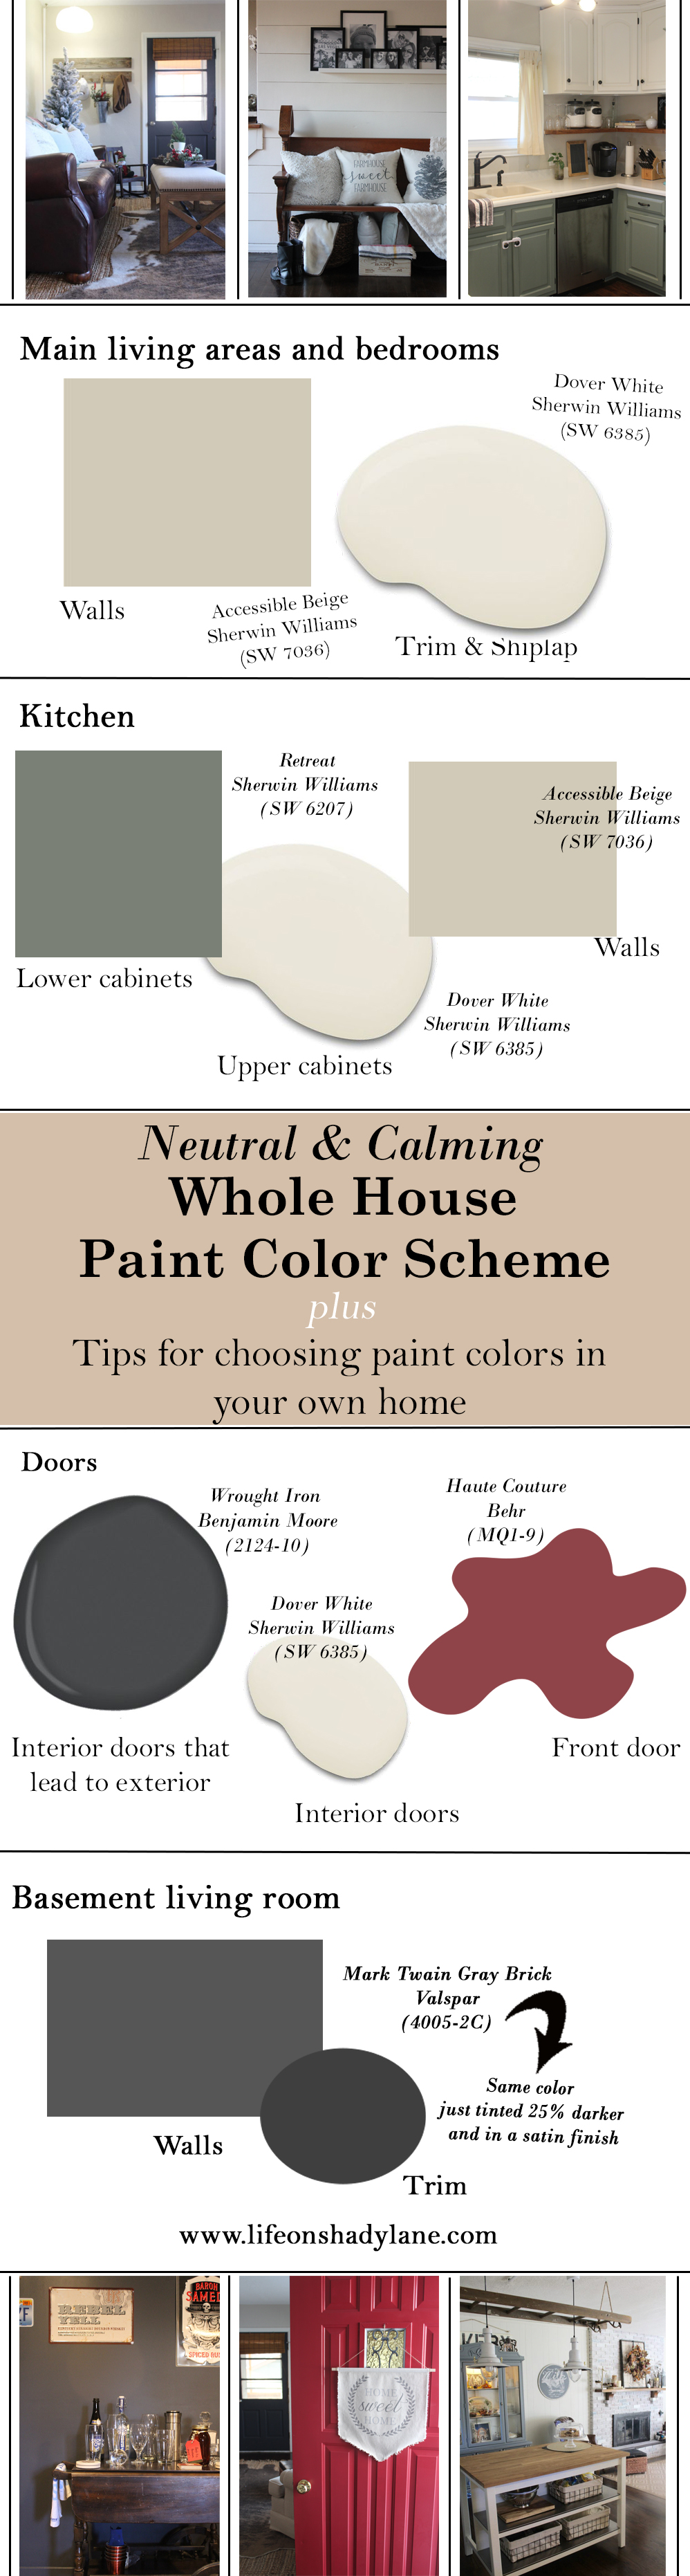 the paint colors we used in our home my tips on picking colors for your own home life on. Black Bedroom Furniture Sets. Home Design Ideas